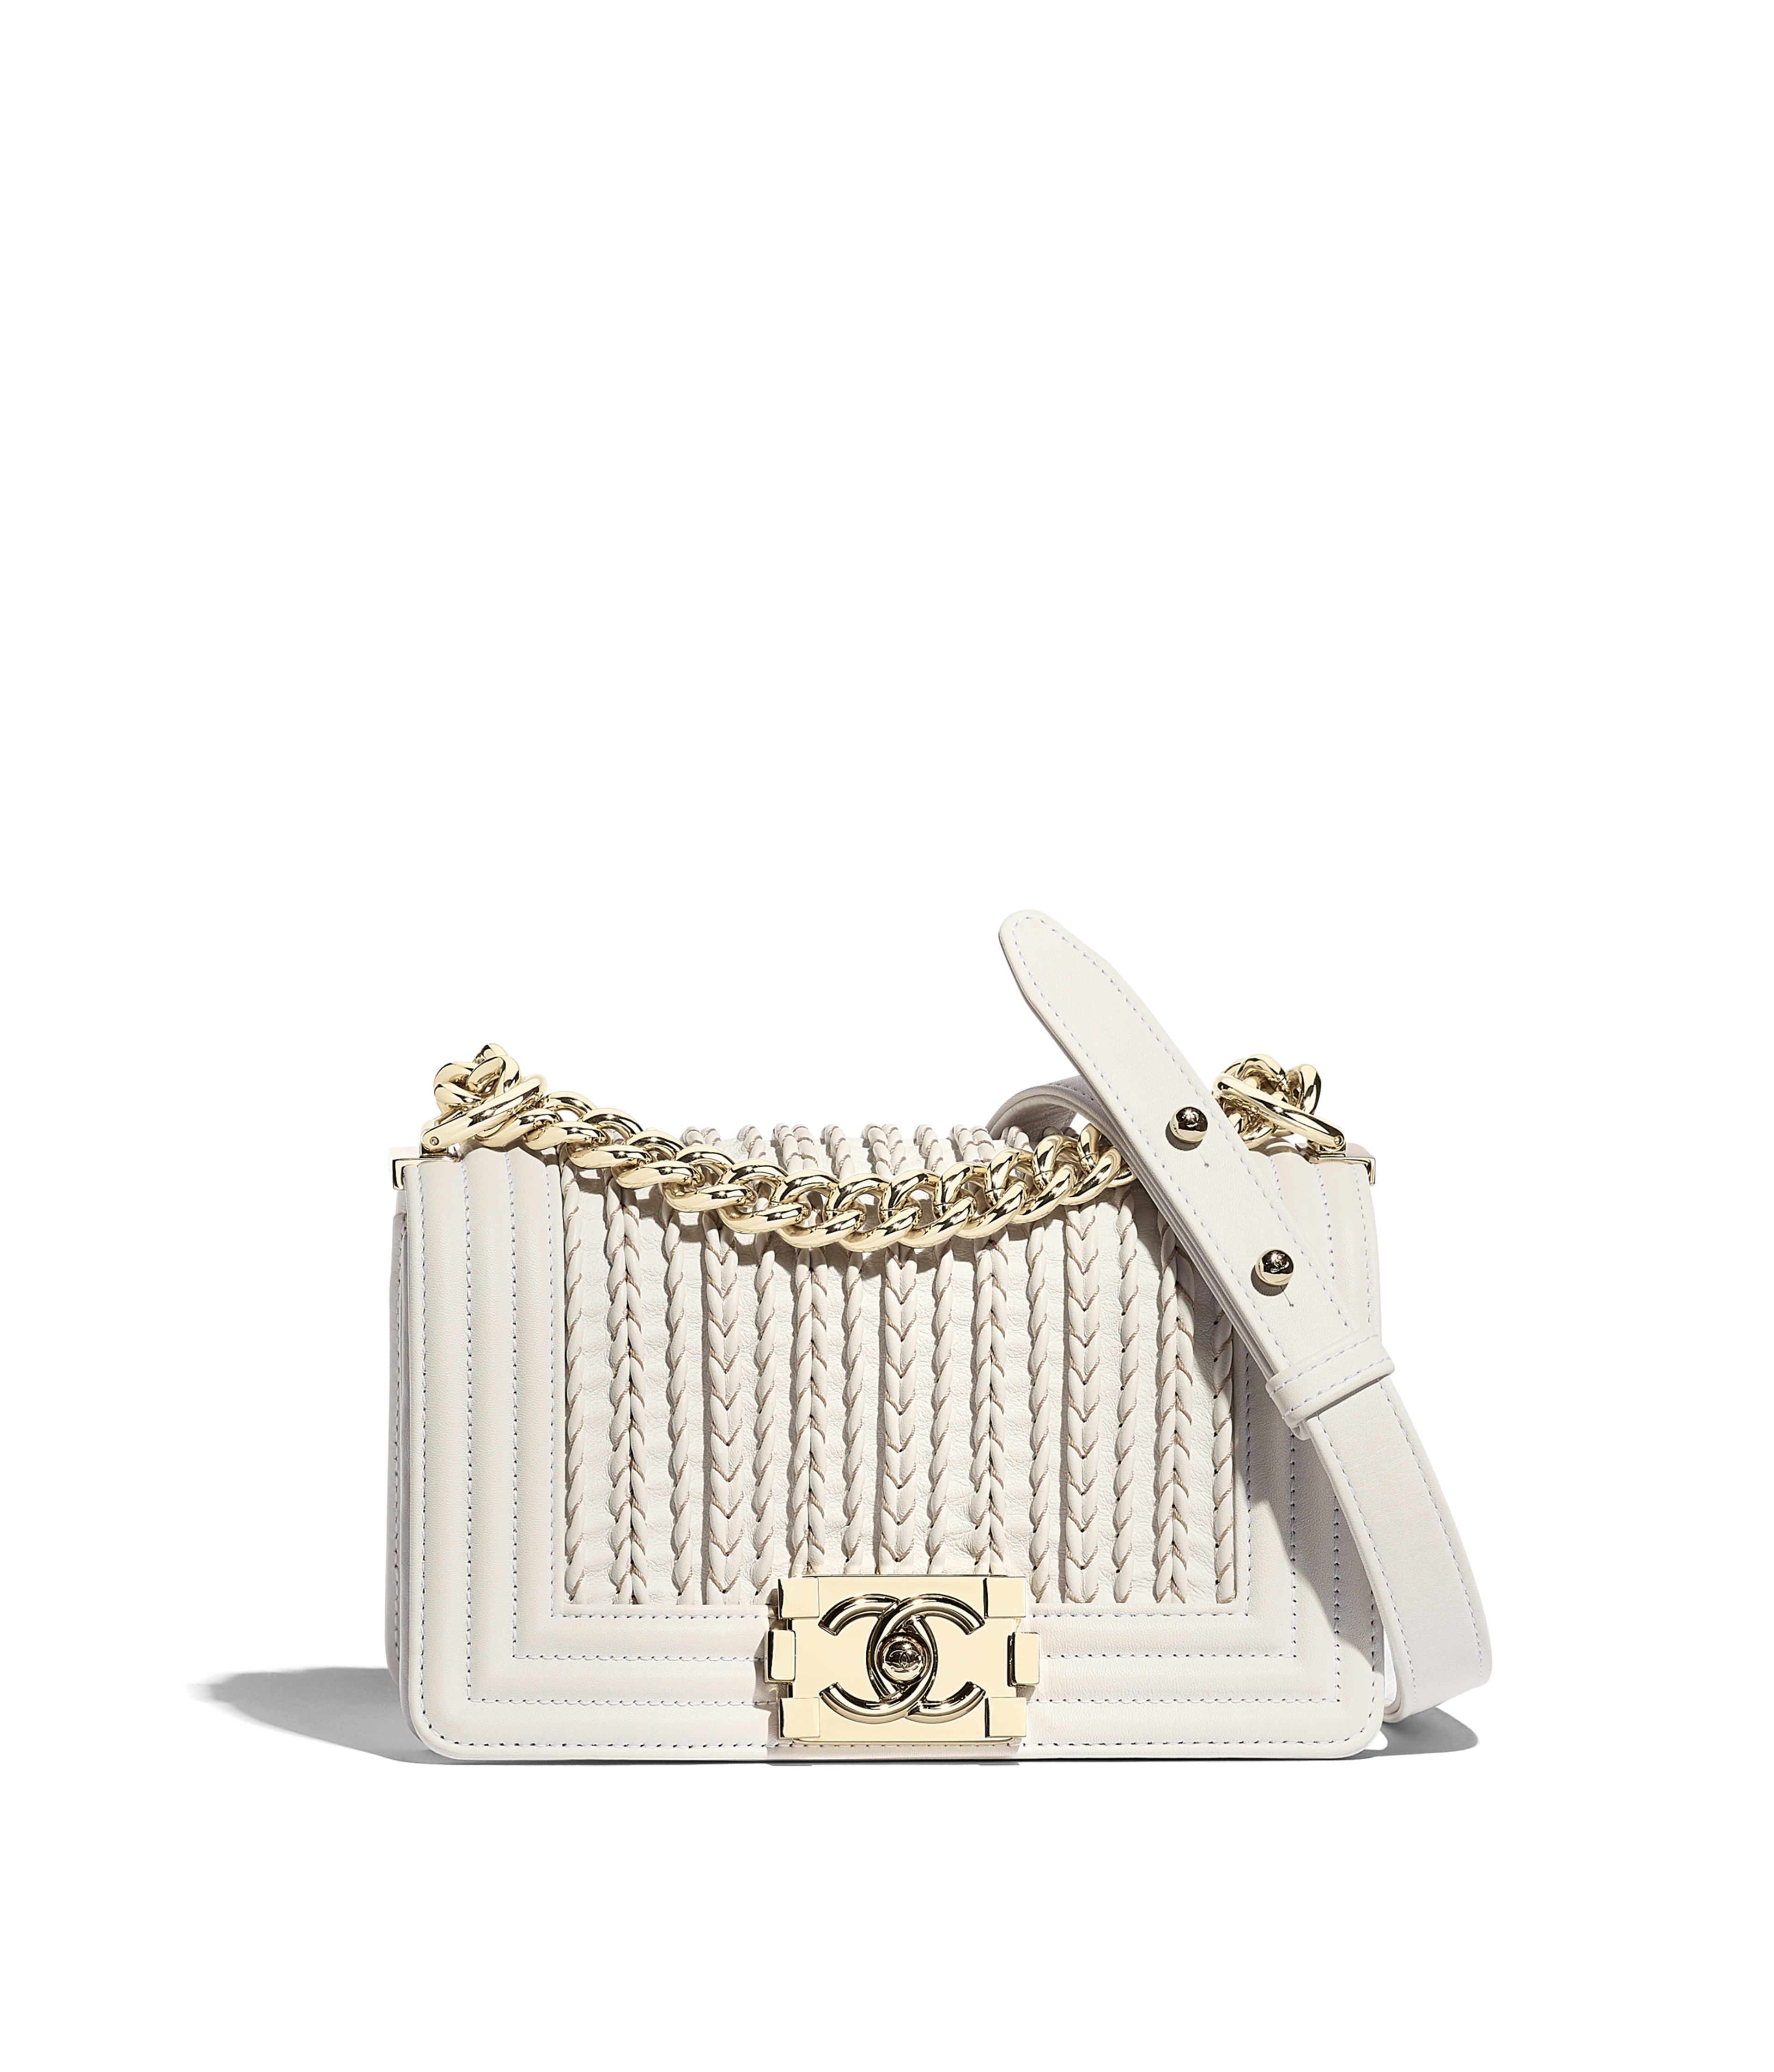 e53982da70b Small BOY CHANEL Handbag Embroidered Calfskin, Smooth Calfskin & Gold-Tone  Metal, White Ref. A67085B0003110601